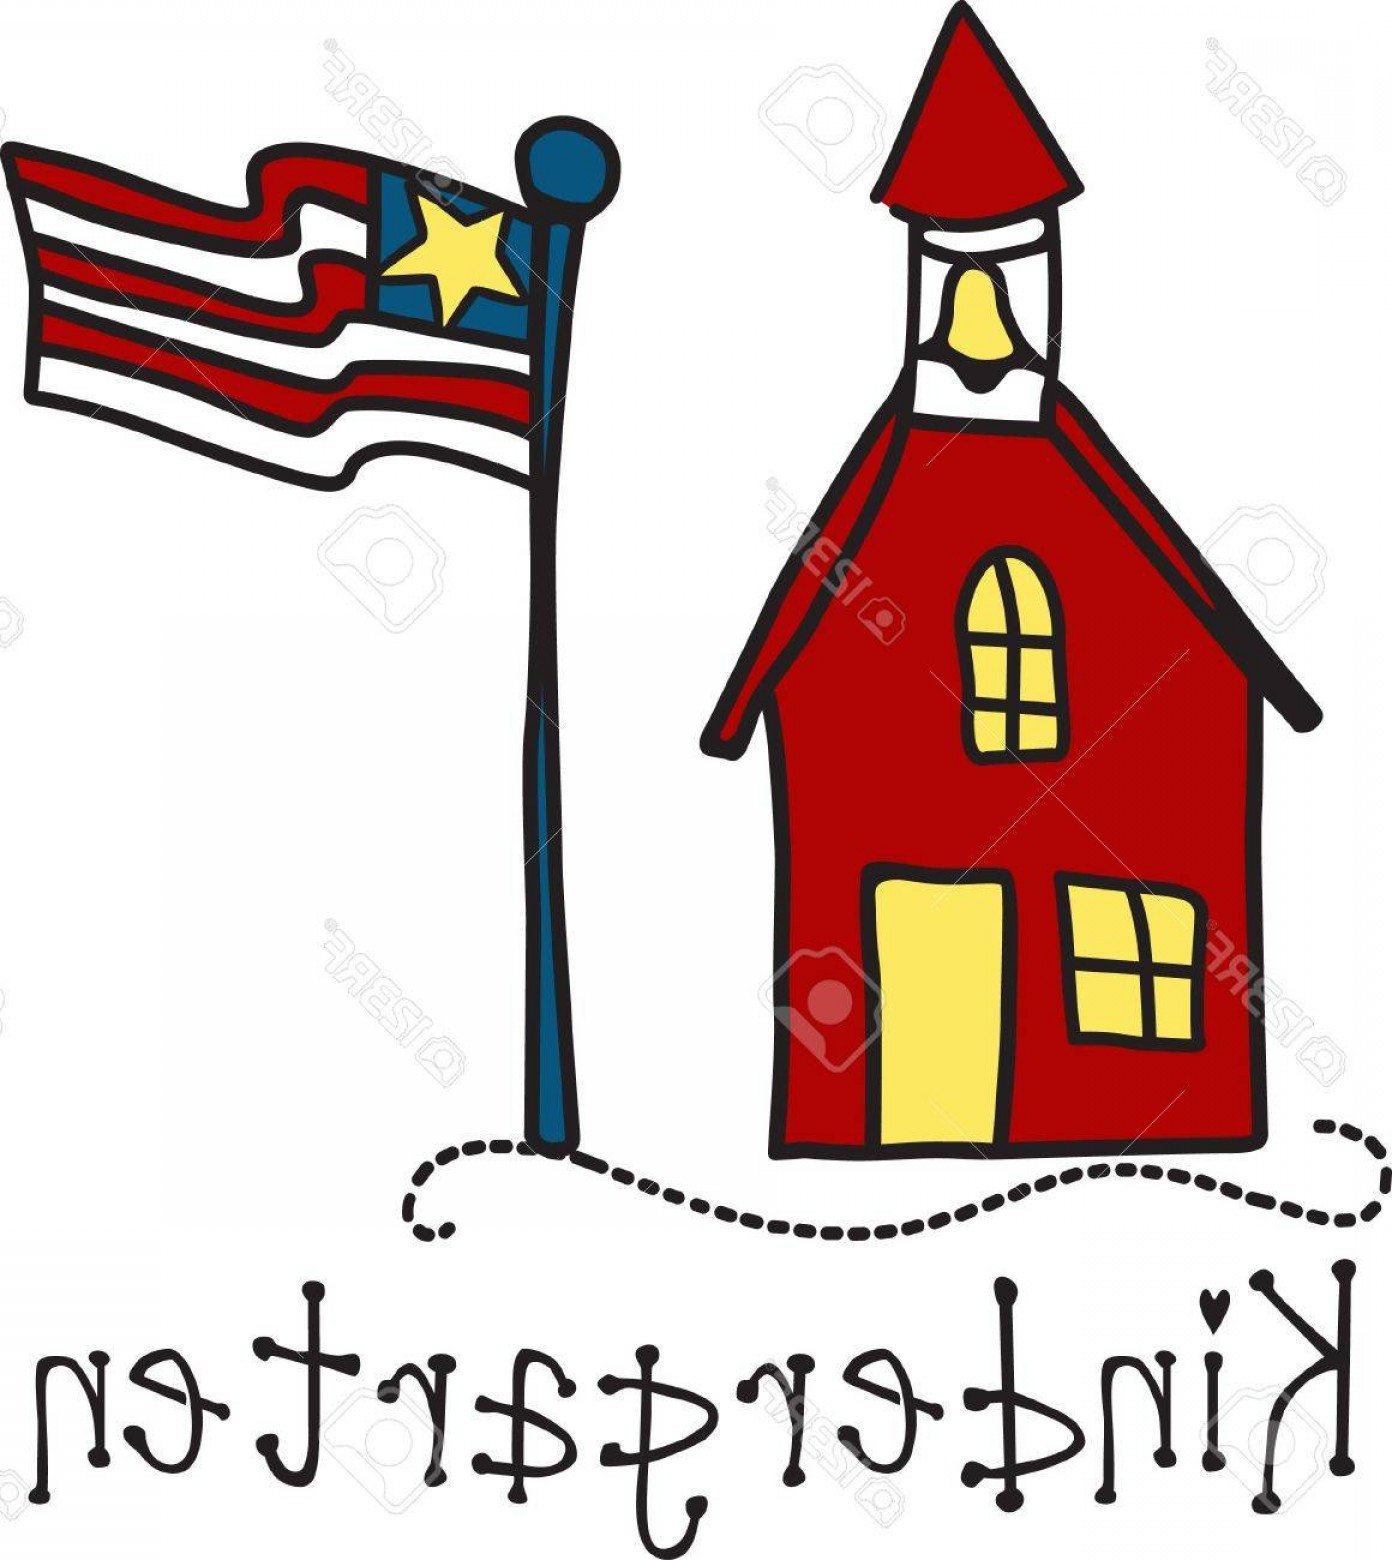 Vector Clip Art Red Schoolhouse: Photostock Vector This Traditional Red School House Of Days Gone By Stands As A Tribute To Education And Educators Use